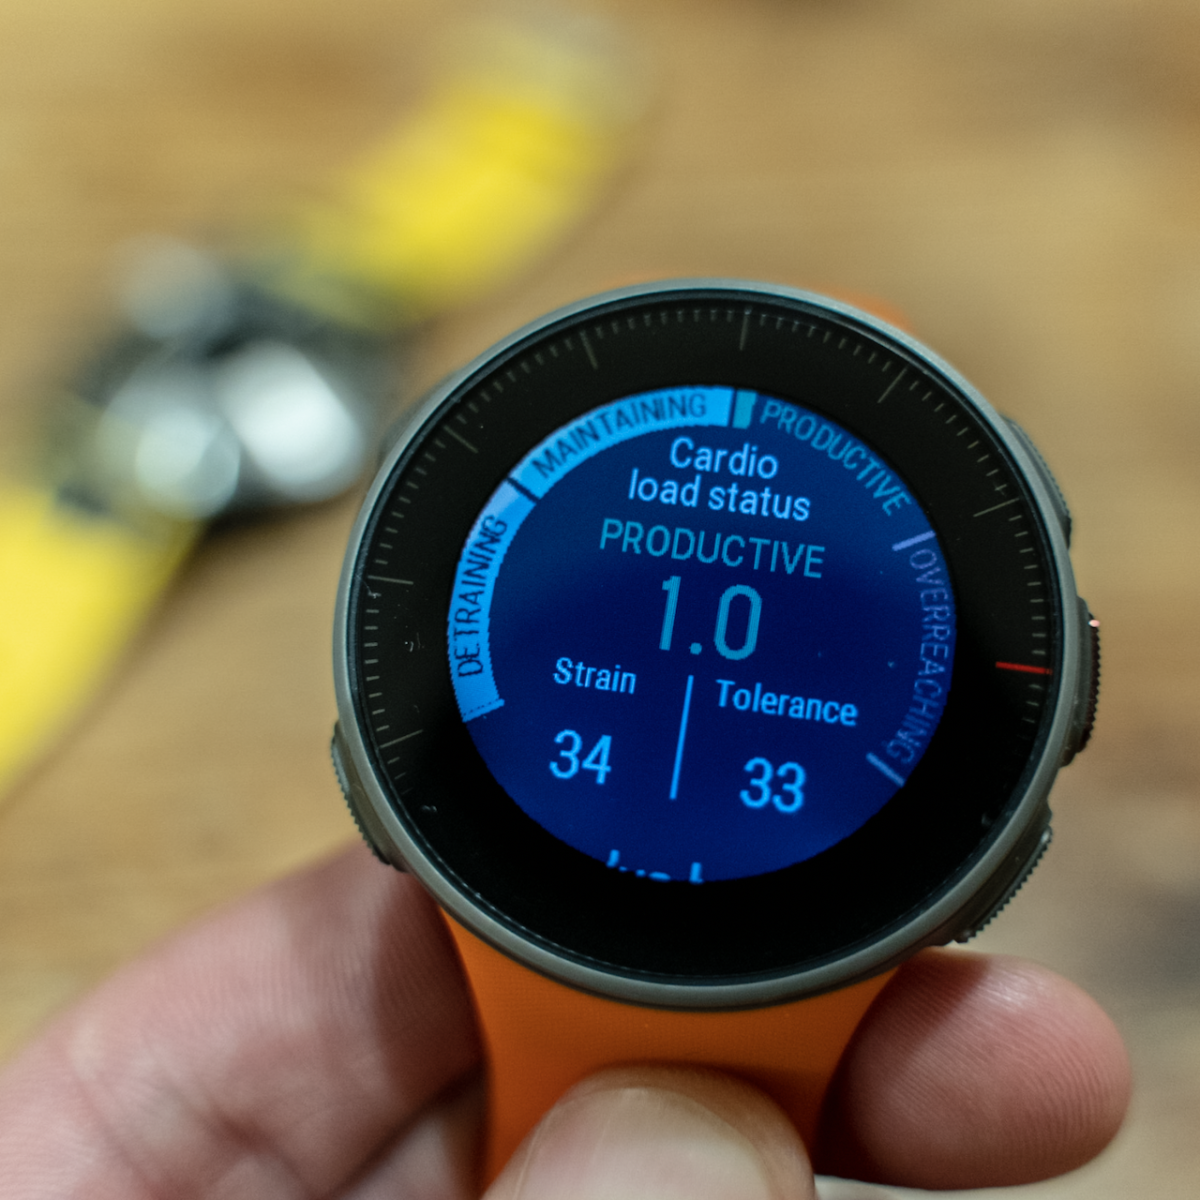 TitaniumGeek Screenshot 2019 03 07 at 15.50.52 1 Polar Vantage V Review   A Garmin Killer? Cycling Gear Reviews Heart Rate Monitors Running  running Polar HRM garmin cycling apple watch   Image of Screenshot 2019 03 07 at 15.50.52 1